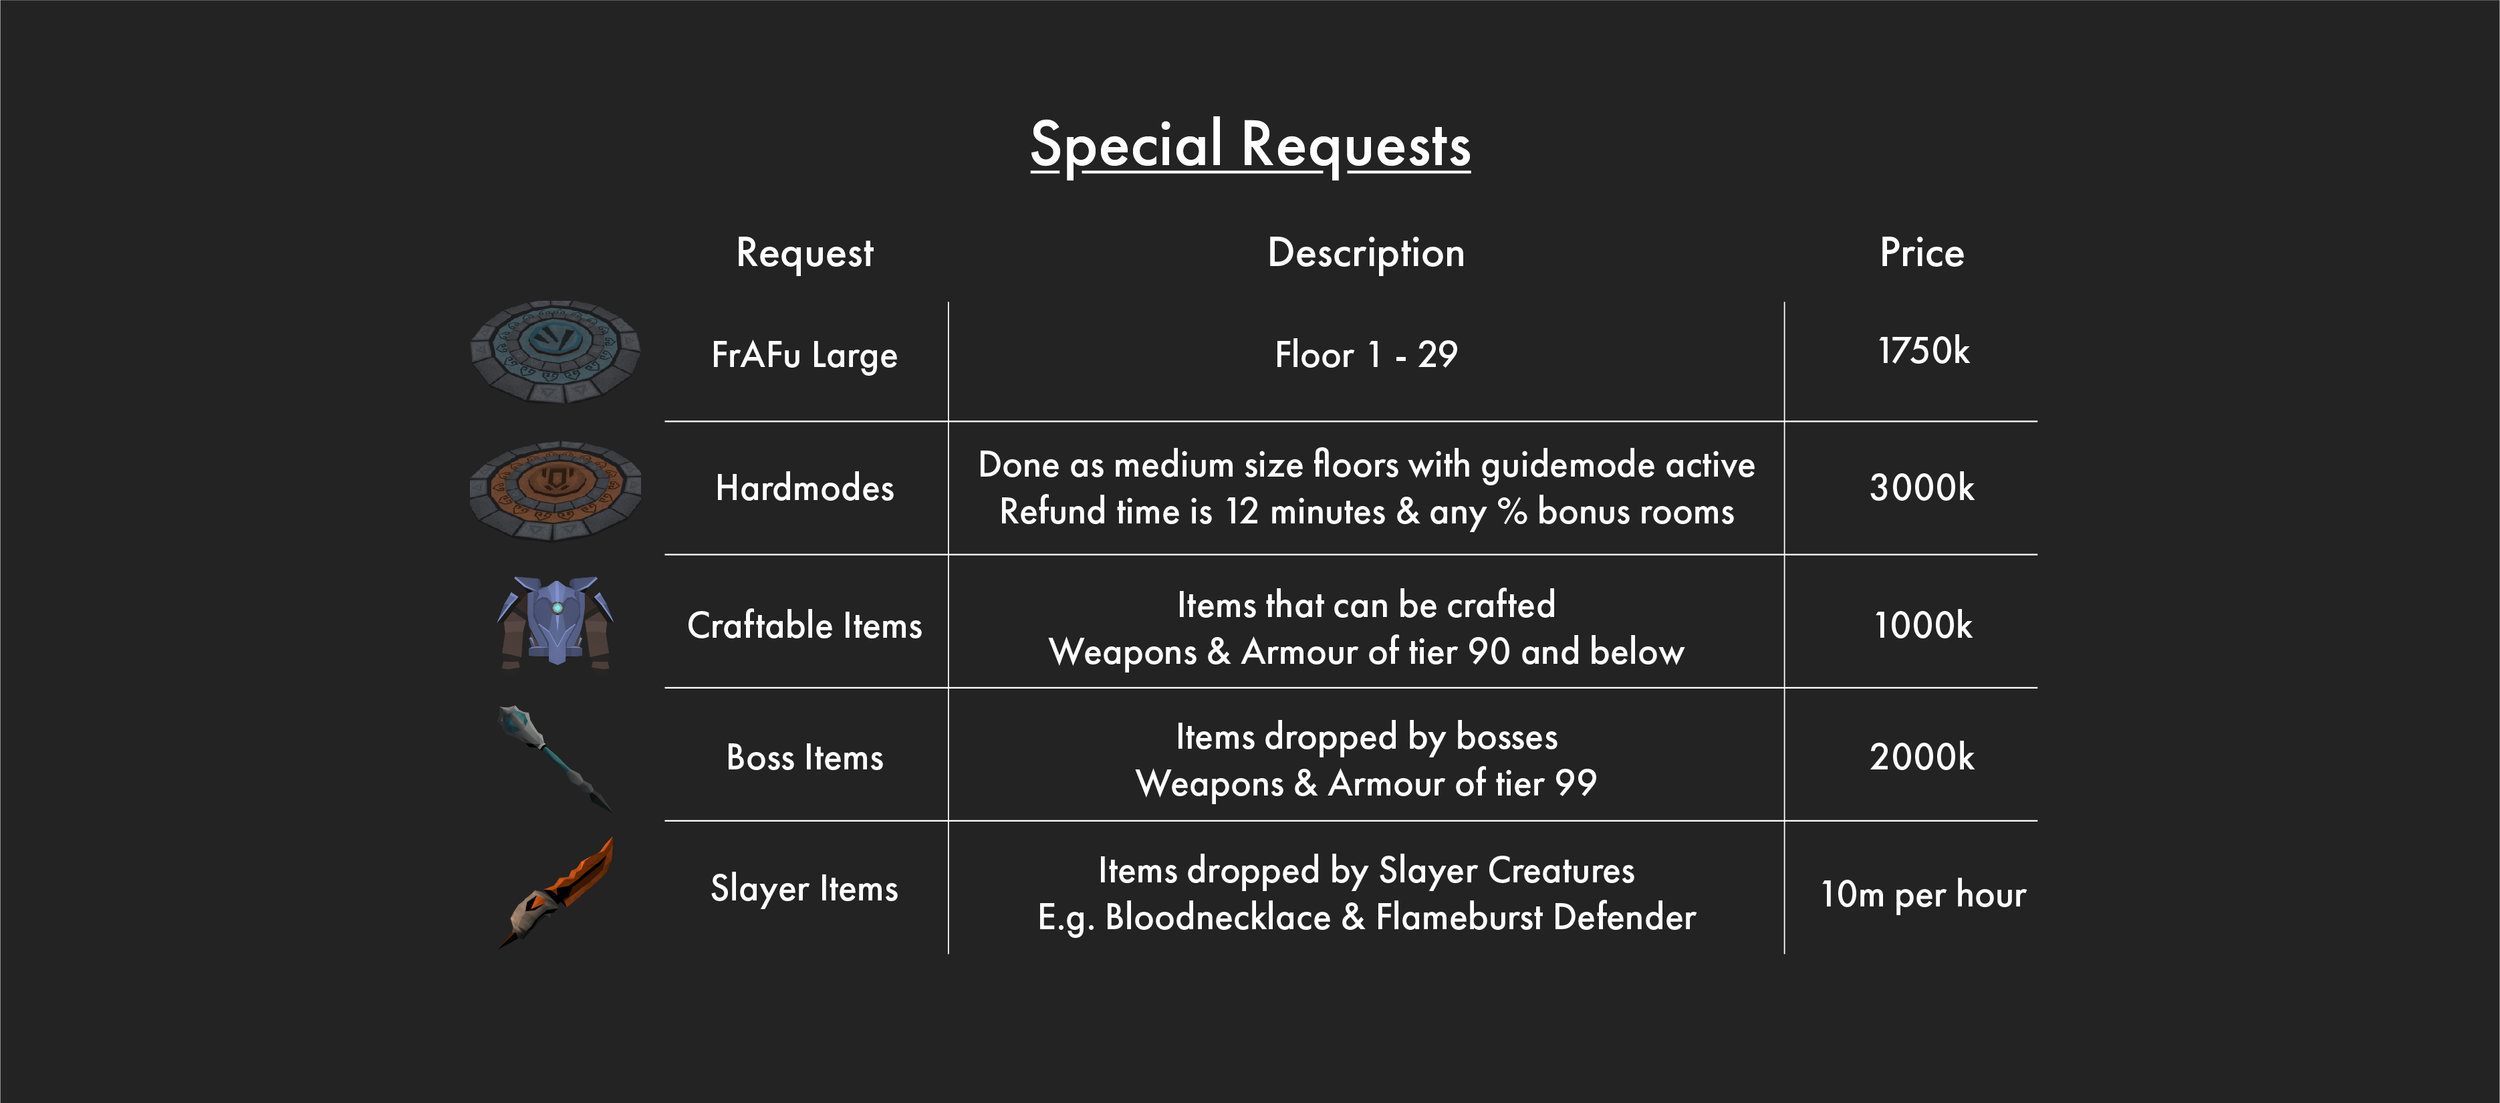 Special Request Prices2.jpg